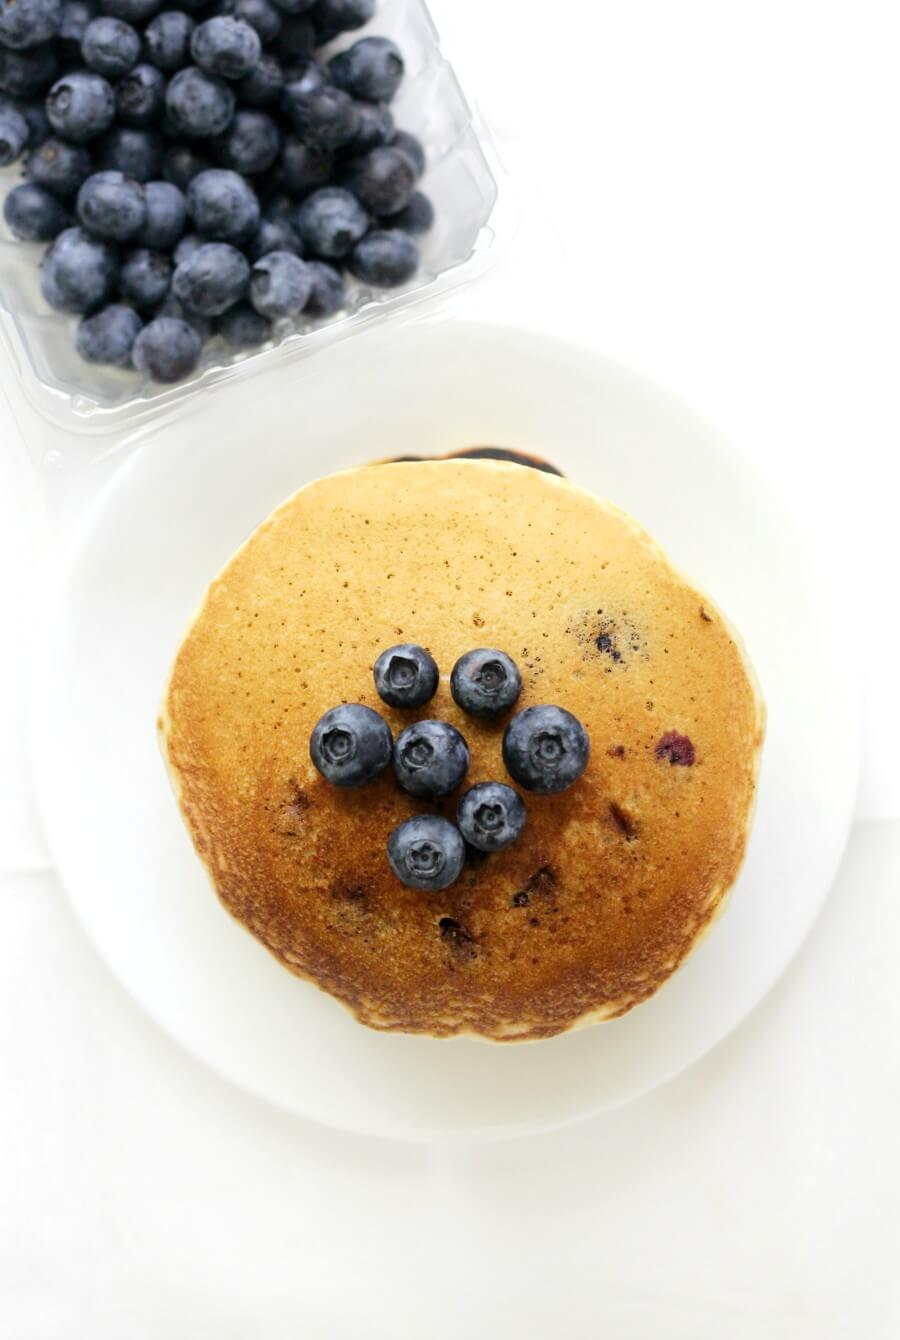 overhead view of gluten-free blueberry pancakes on white plate with carton of fresh blueberries